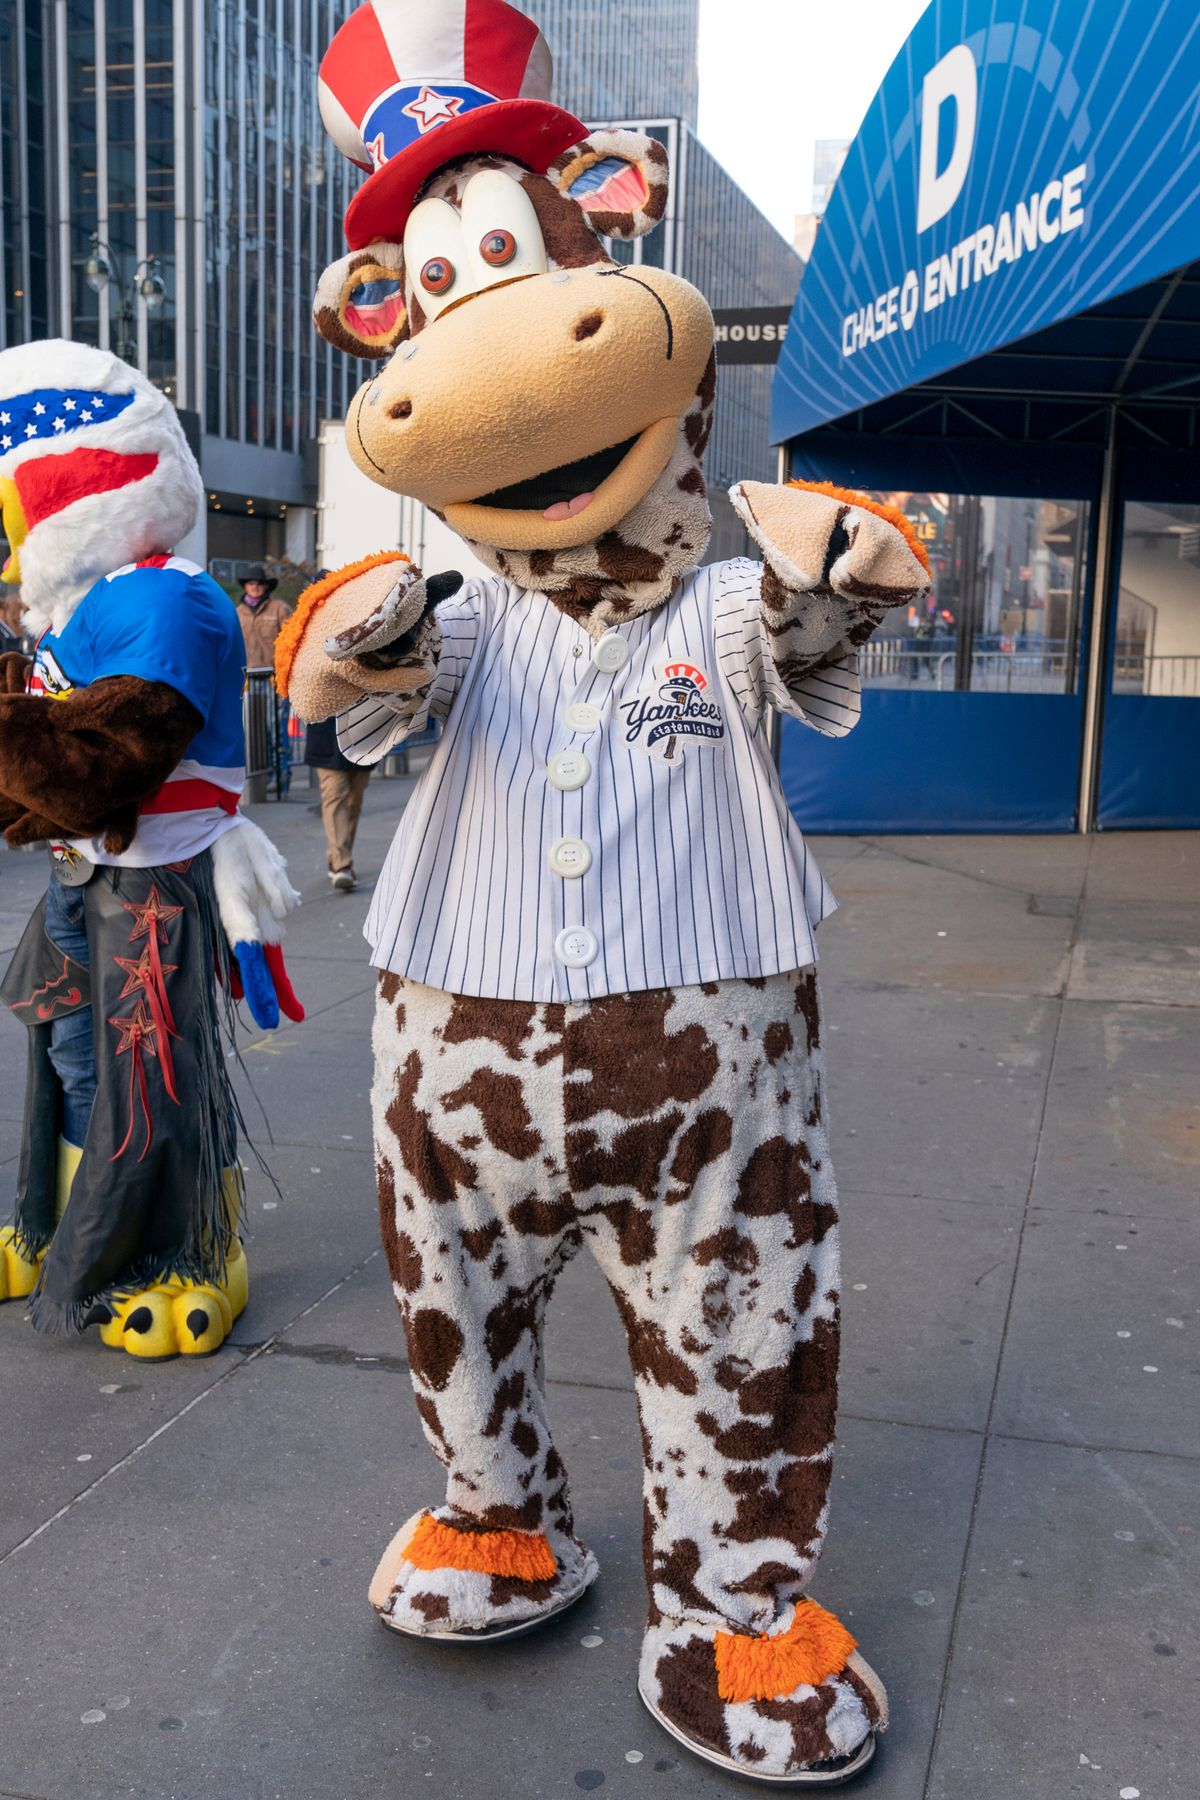 S.I. Yankees mascot Scooter the Holy Cow at the Tribeca Film festival on Greenwich Street in Manhattan, on April 28, 2012.